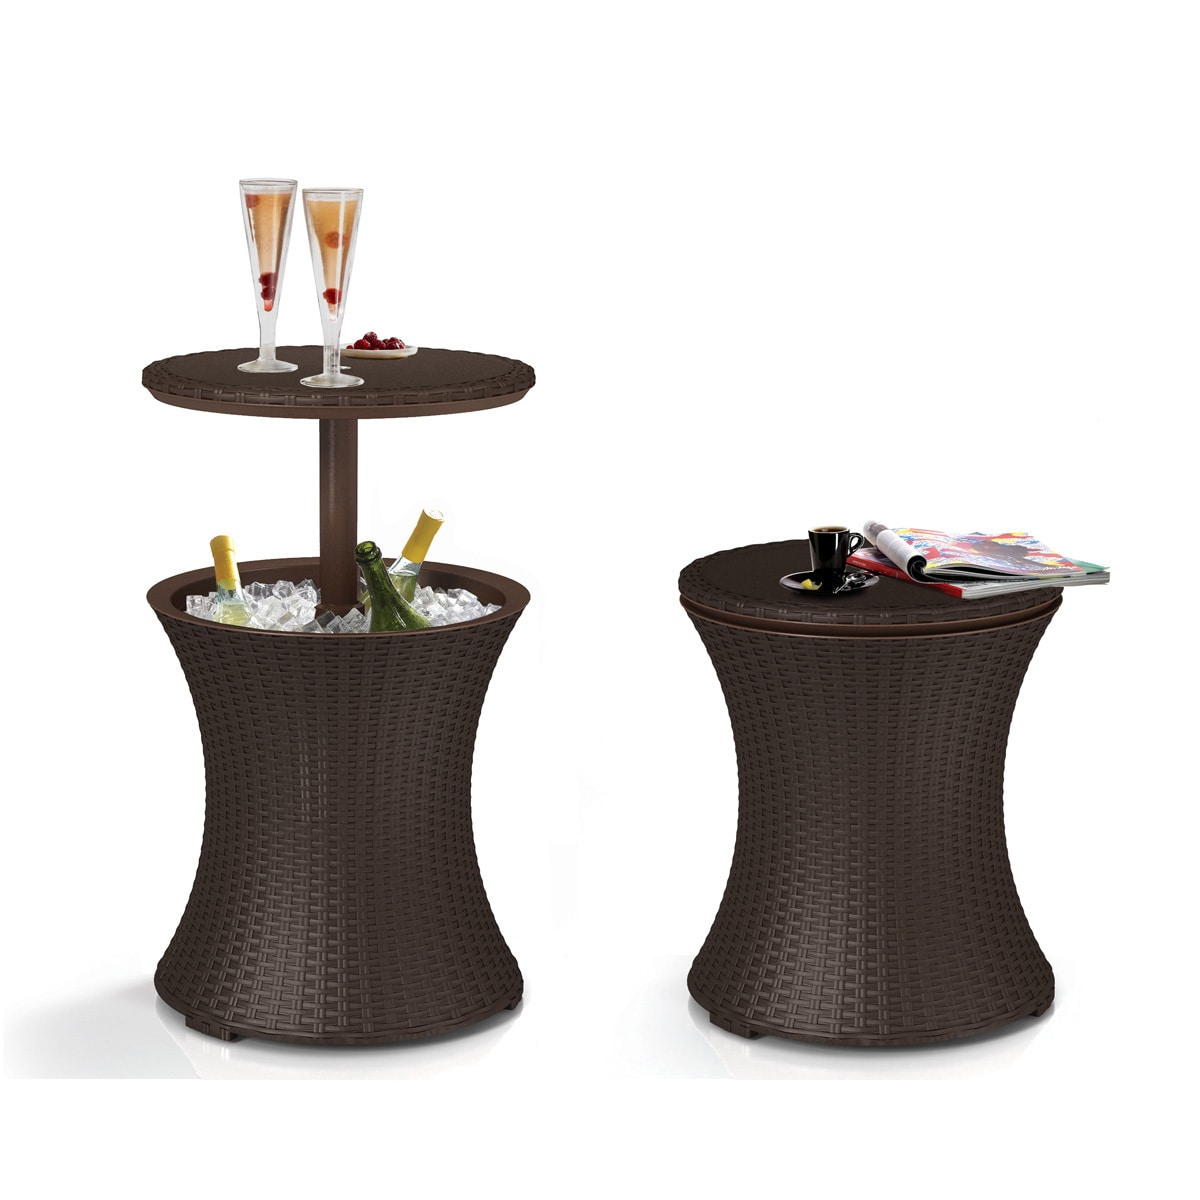 Superbe Keter Pacific Cool Bar Brown Wicker Outdoor Ice Cooler Table